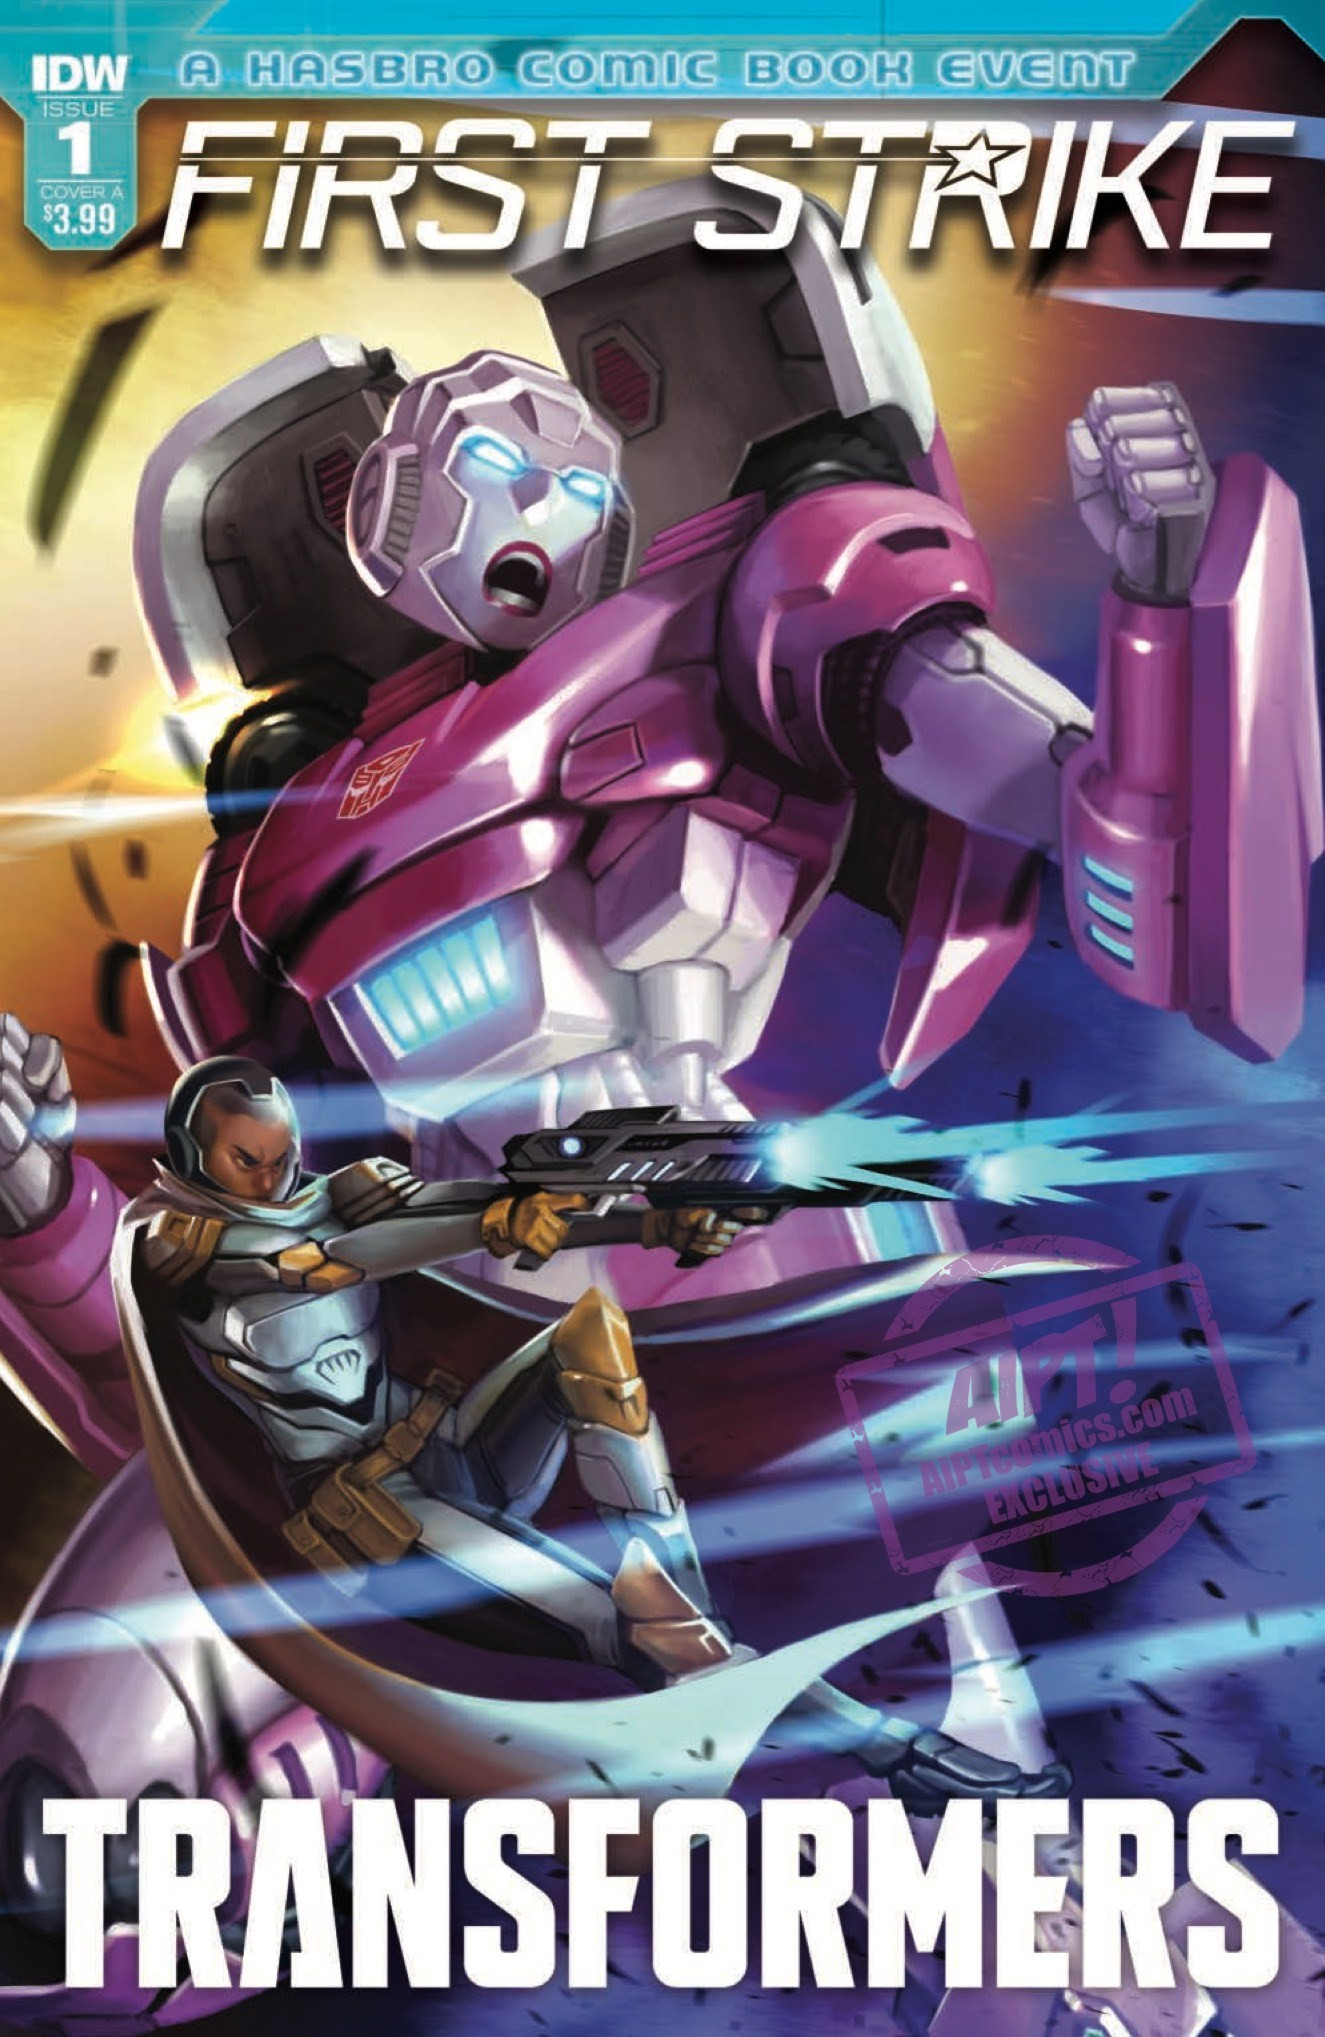 Transformers News: Full Preview for IDW Transformers: First Strike #1 #HasbroFirstStrike